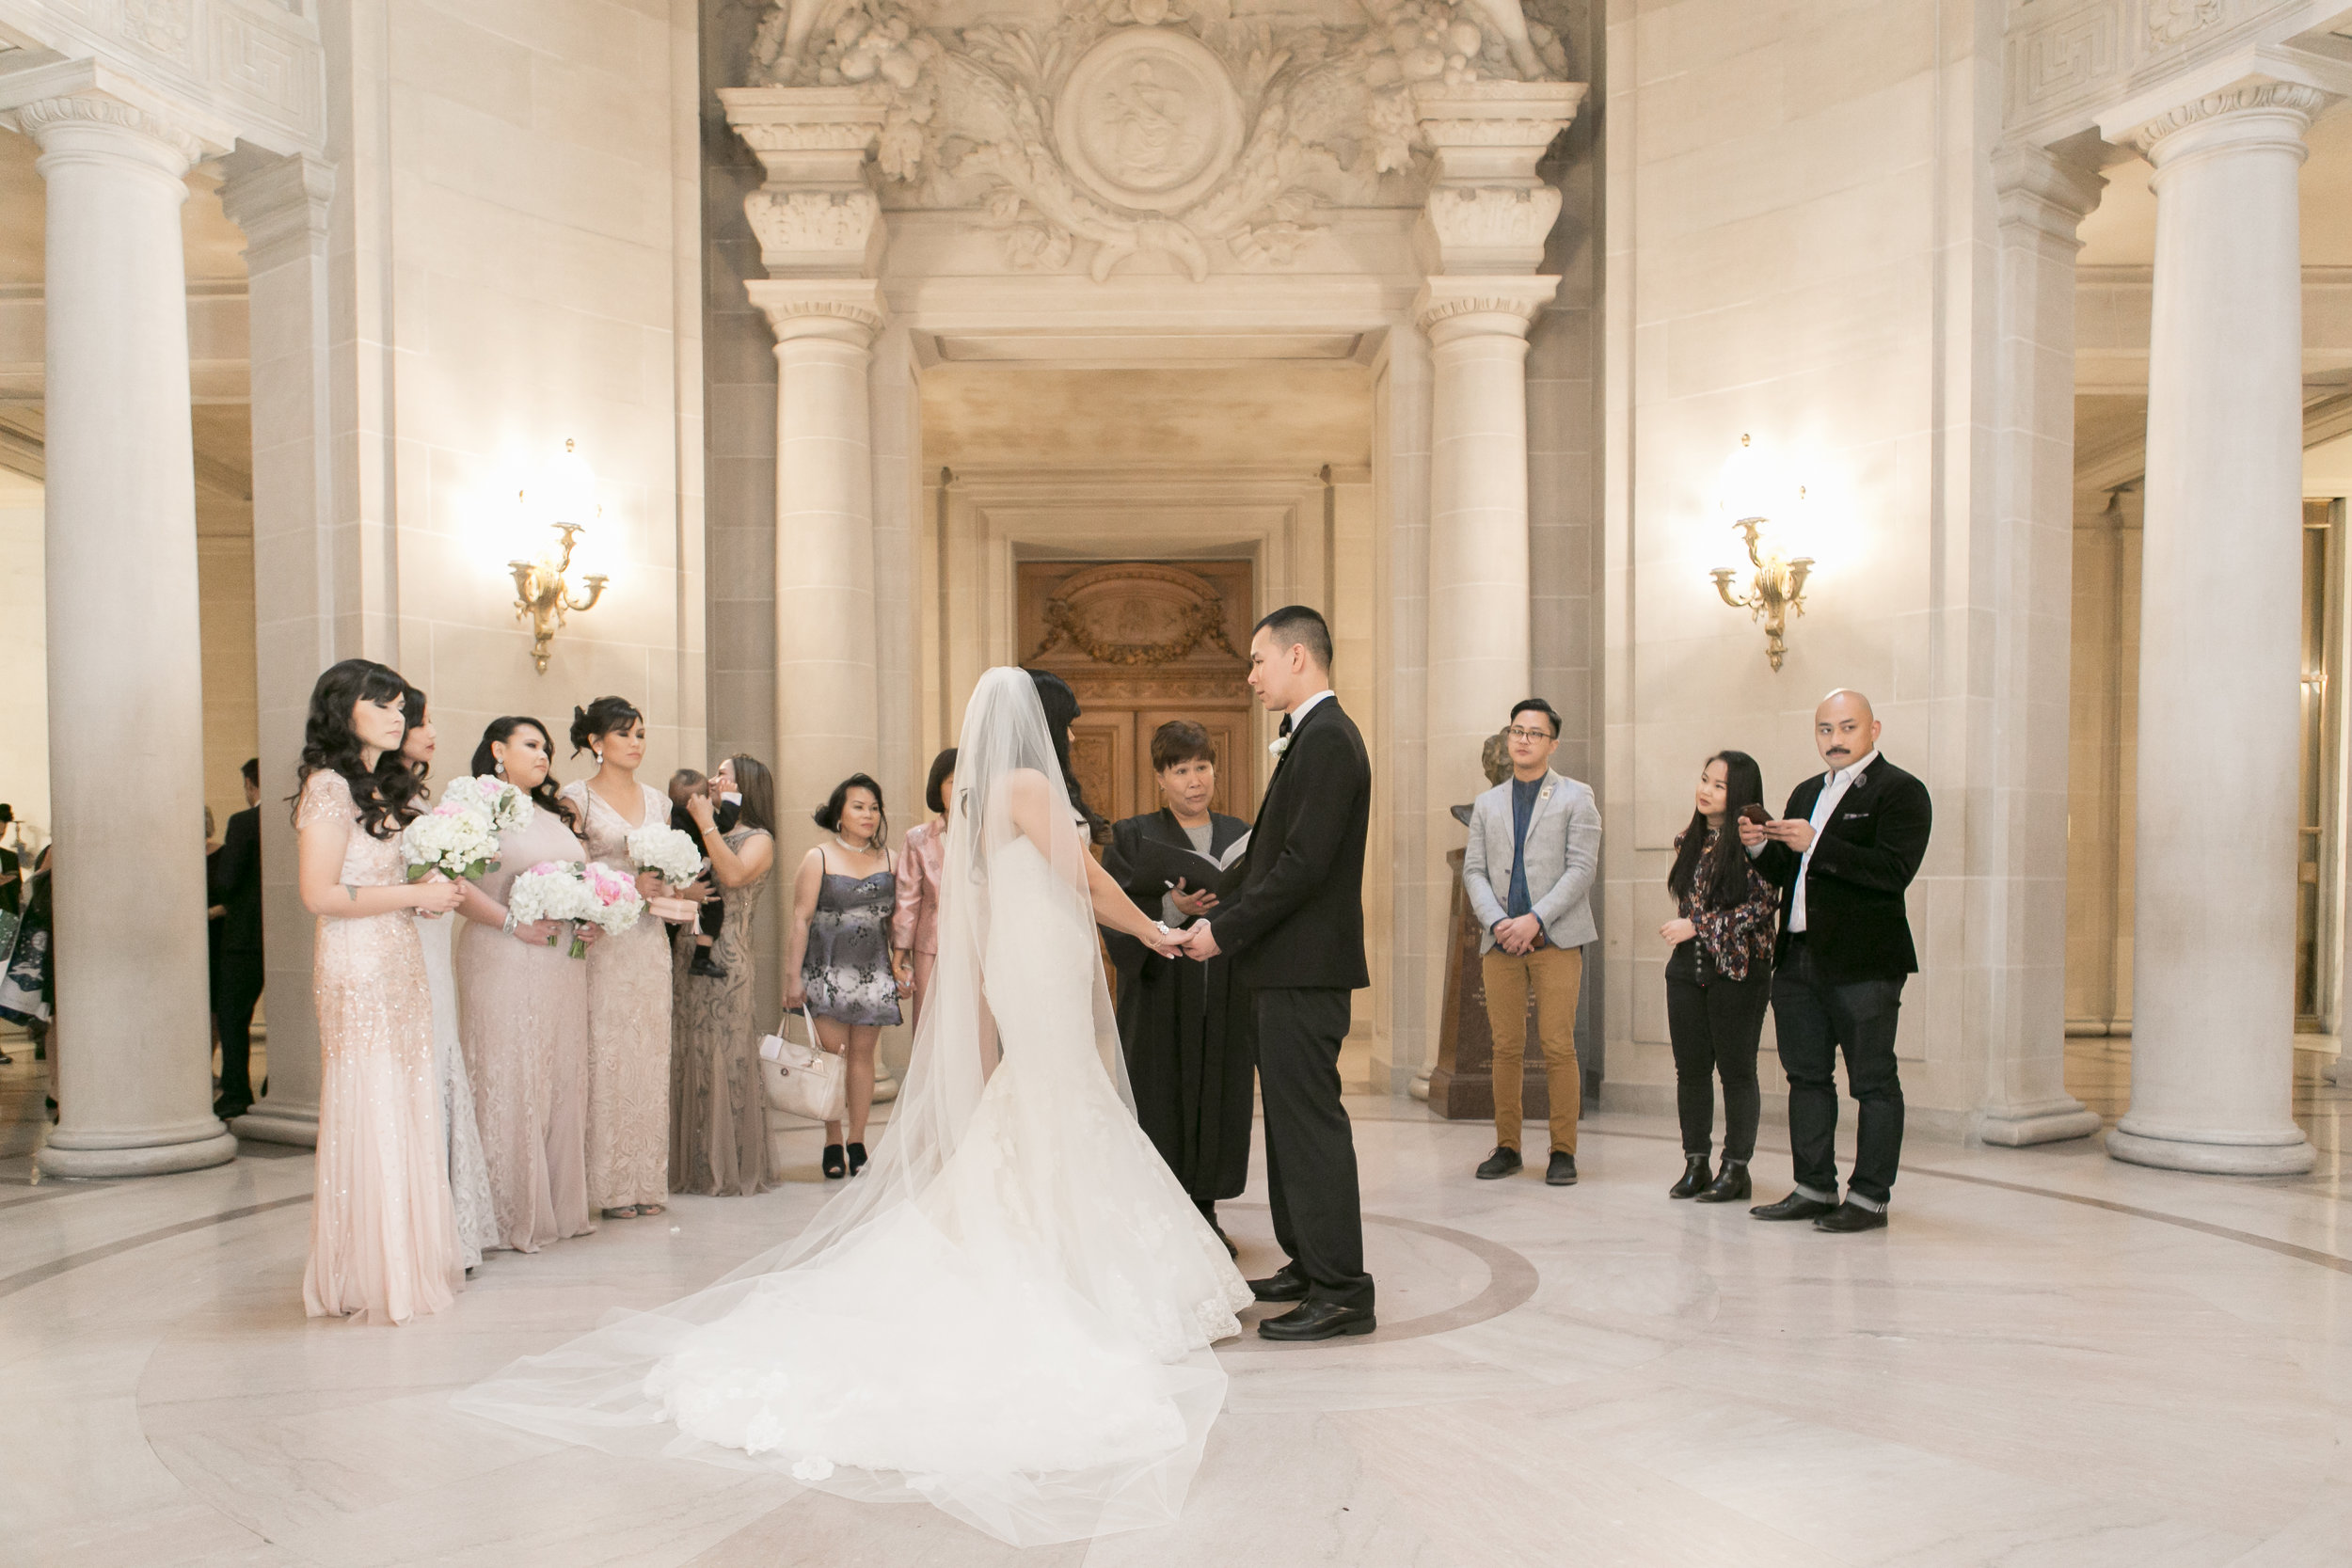 www.michellechangphotography.com - San Francisco City Hall Wedding Photographer